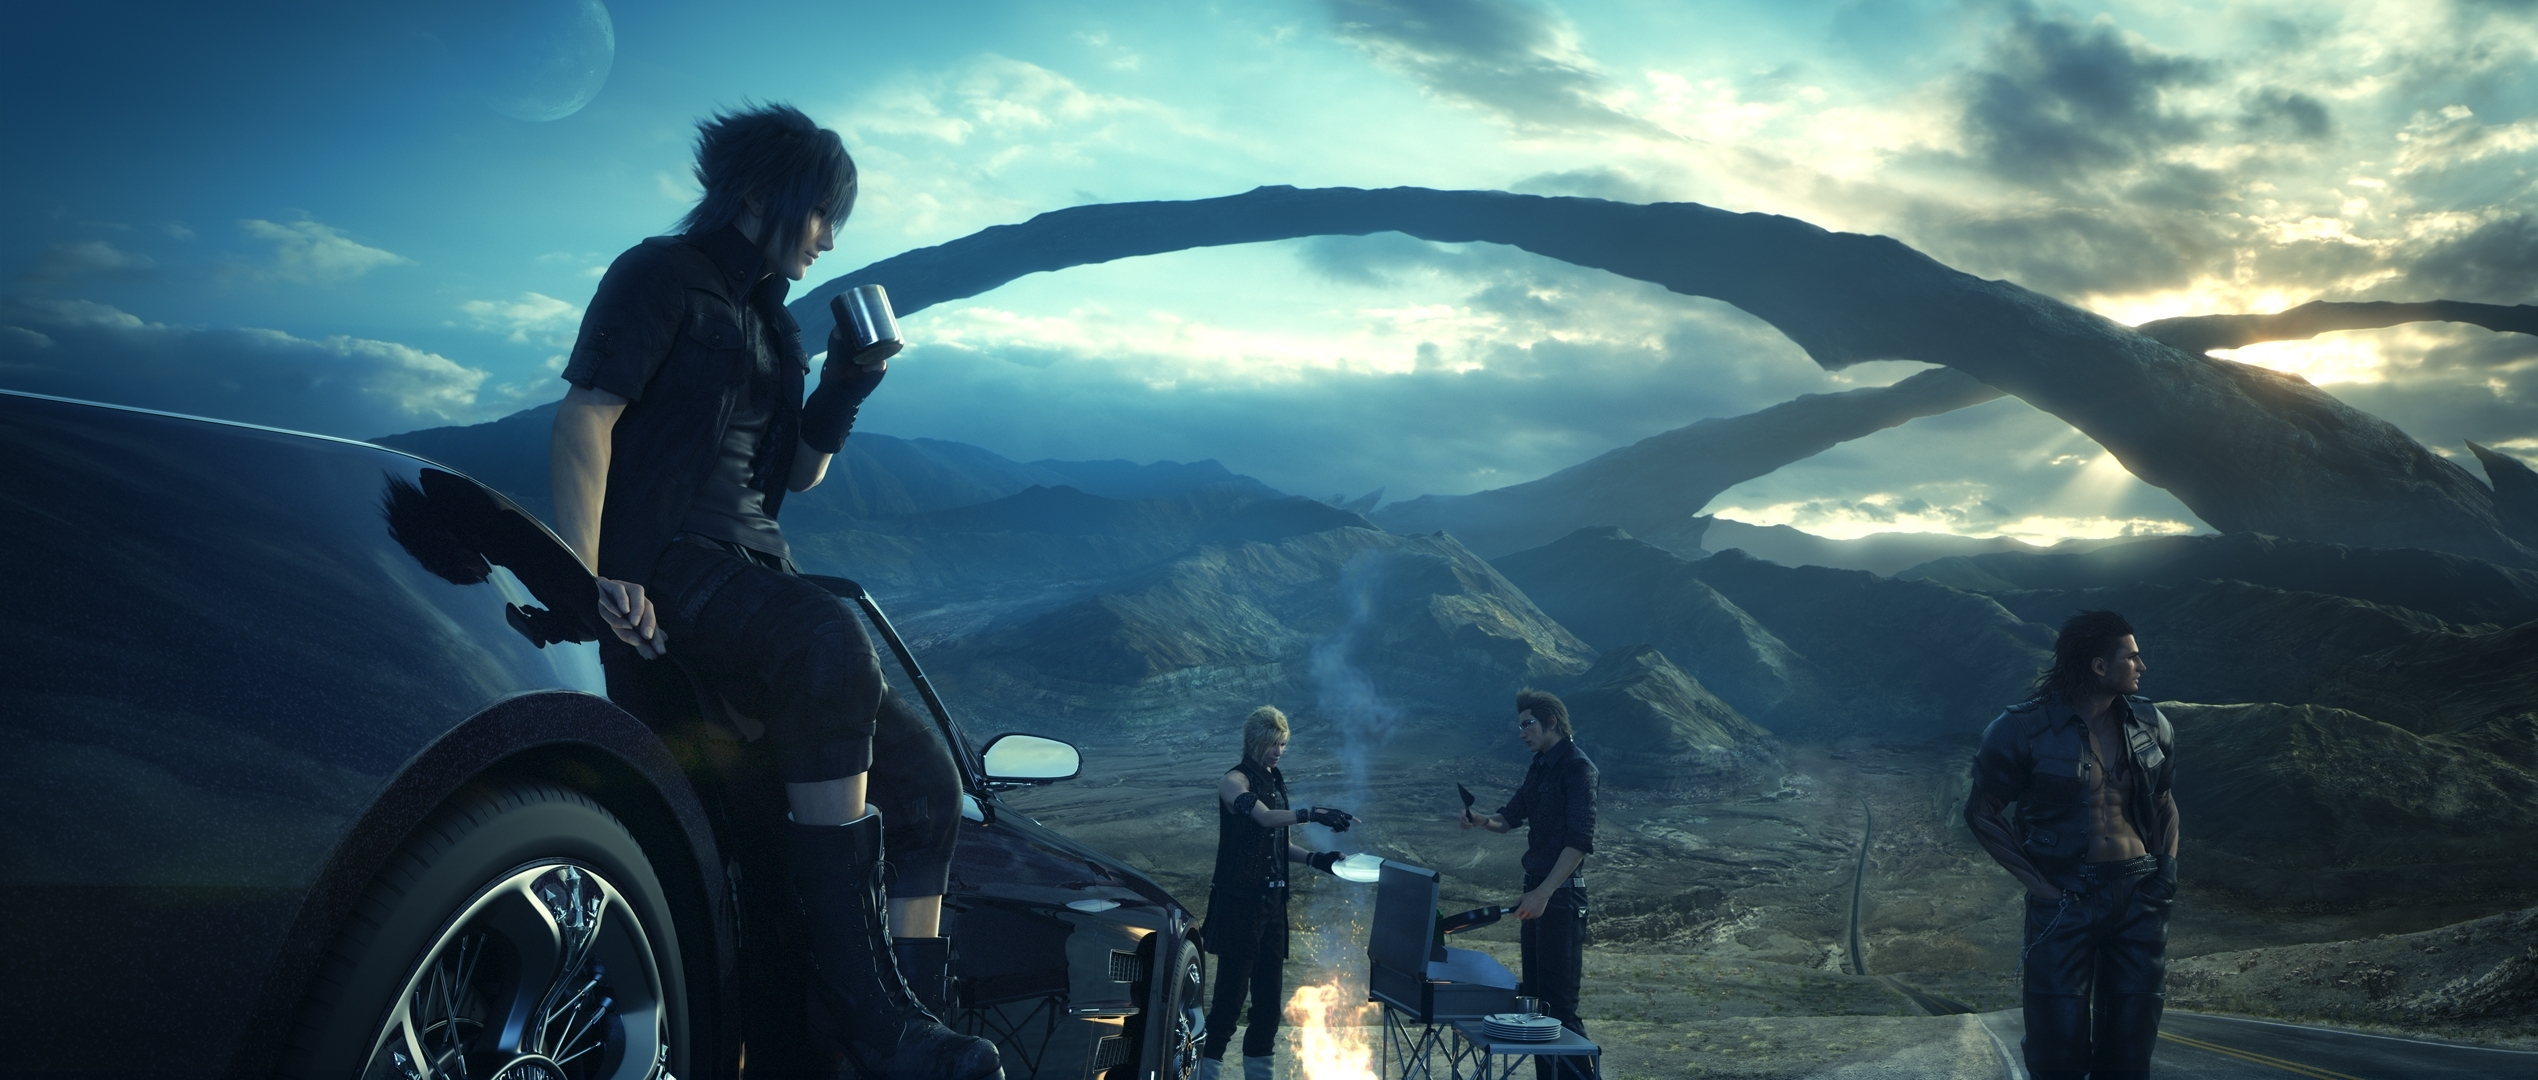 98 final fantasy xv hd wallpapers   background images - wallpaper abyss